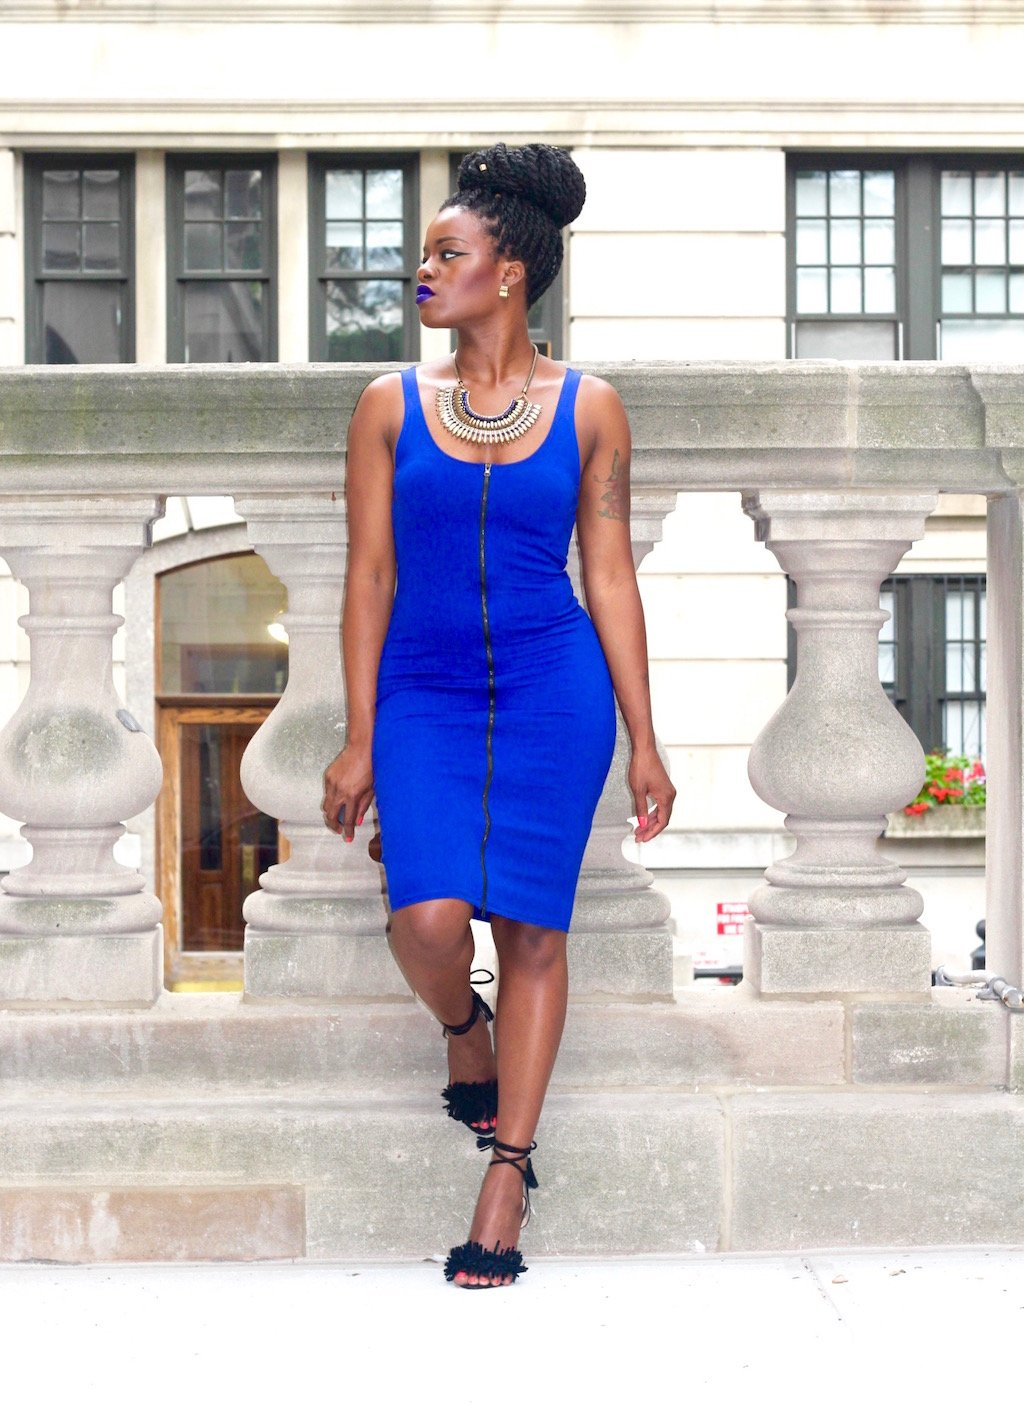 Royal Blue Dress Outfit